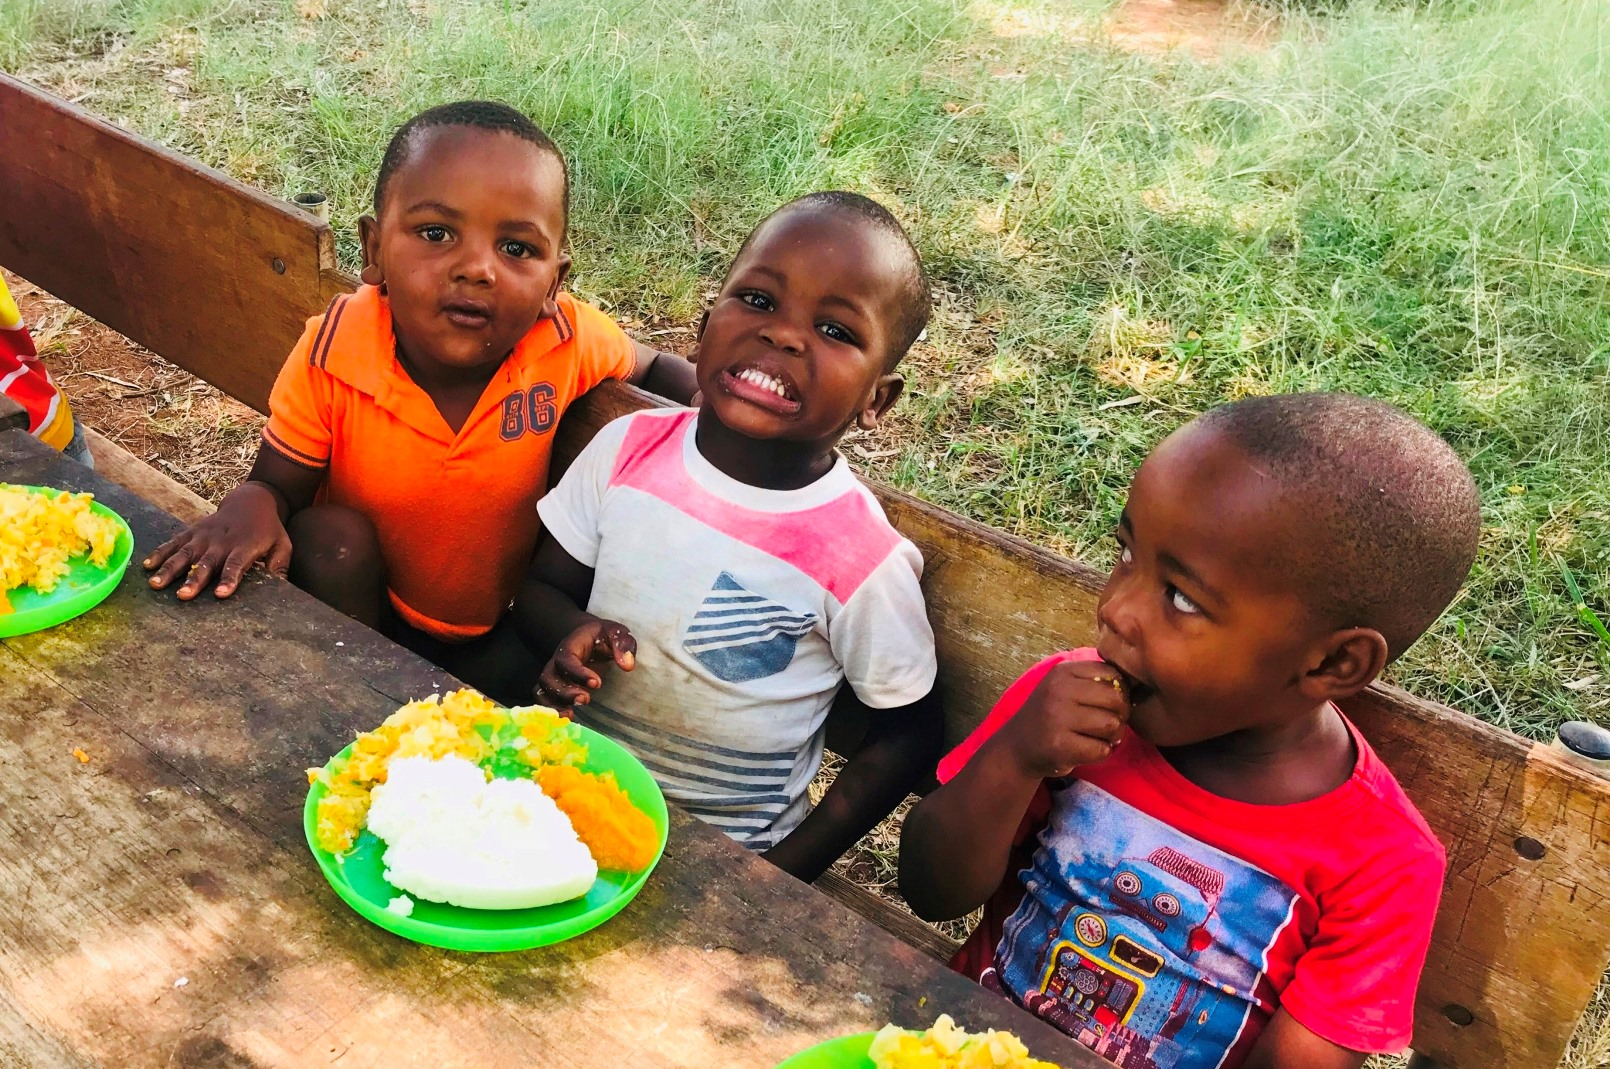 FNB Magalies Monster MTB Classic supports Tswelelang Early Learning Day Care Centre